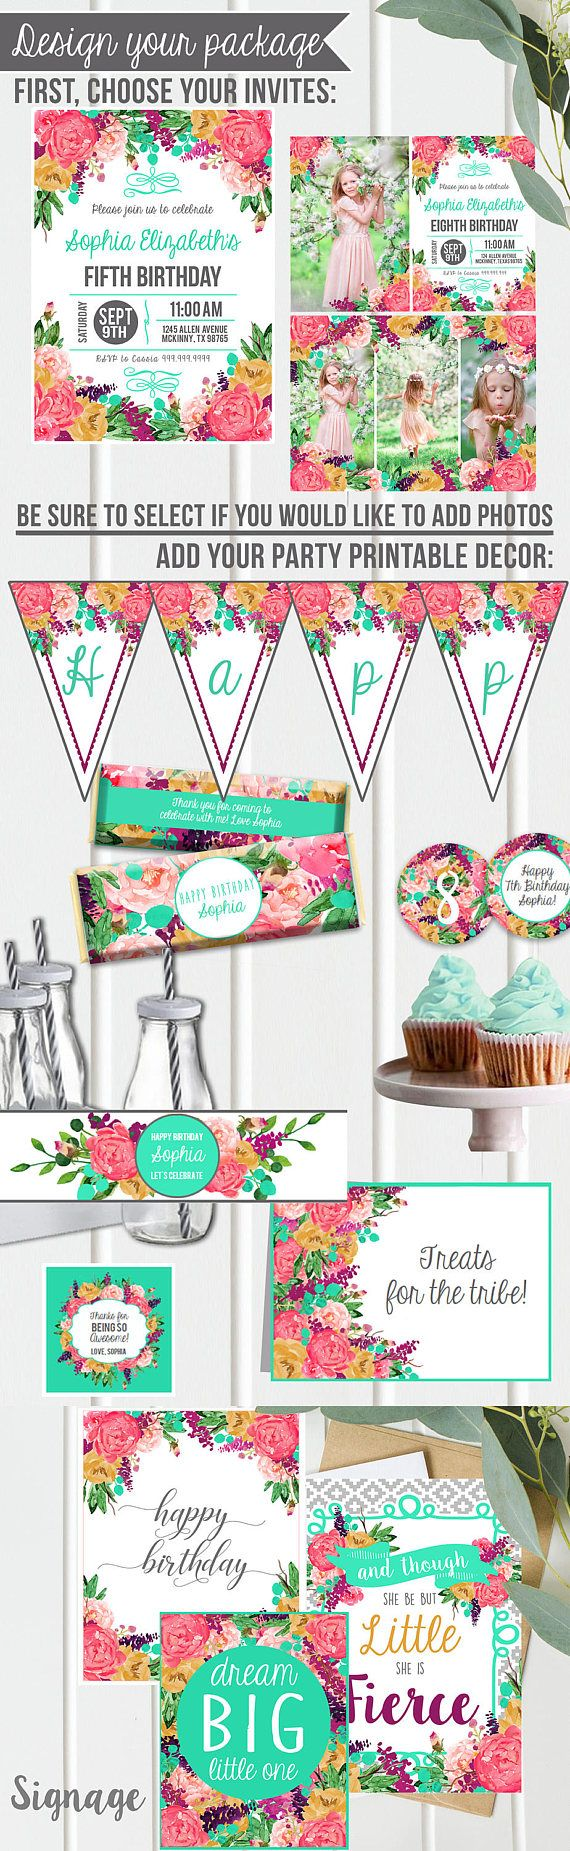 56 best Invitations - we like to party images on Pinterest ...